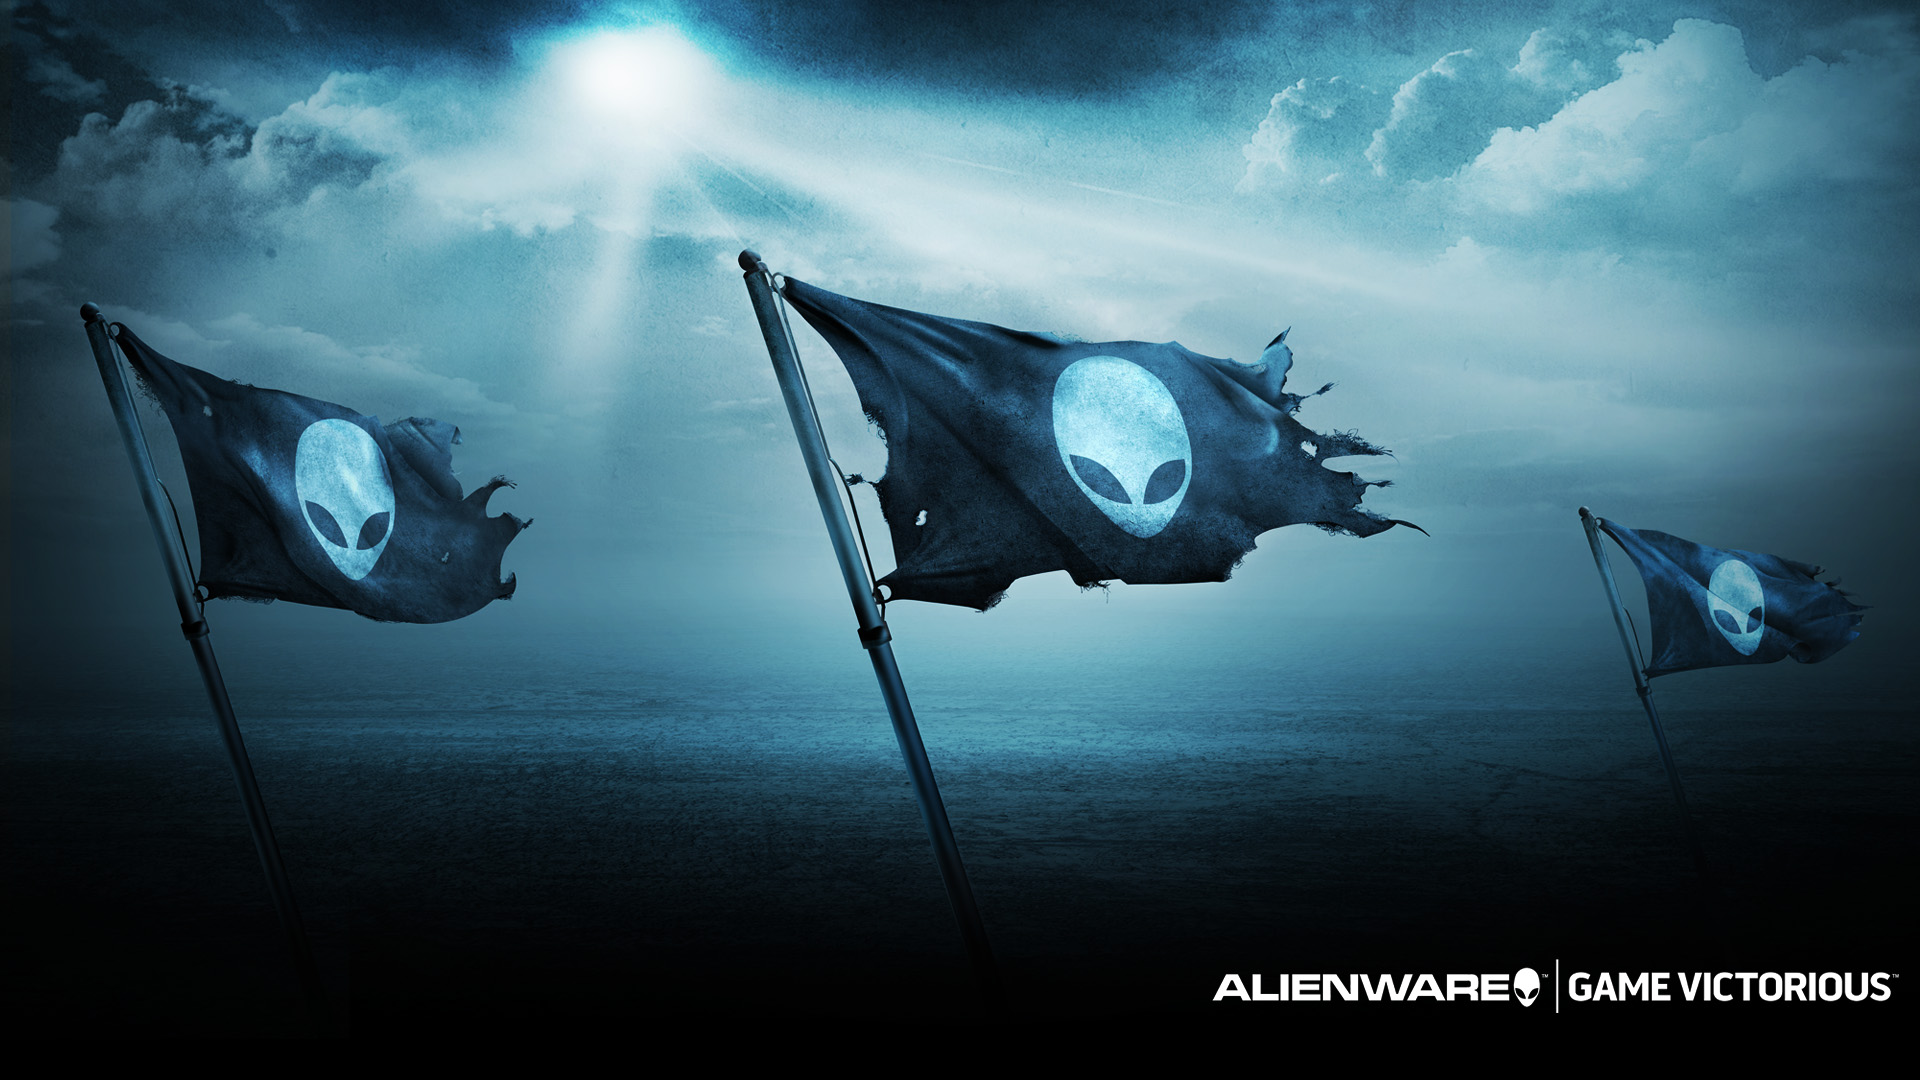 1000+ ideas about Alienware Wallpaper on Pinterest